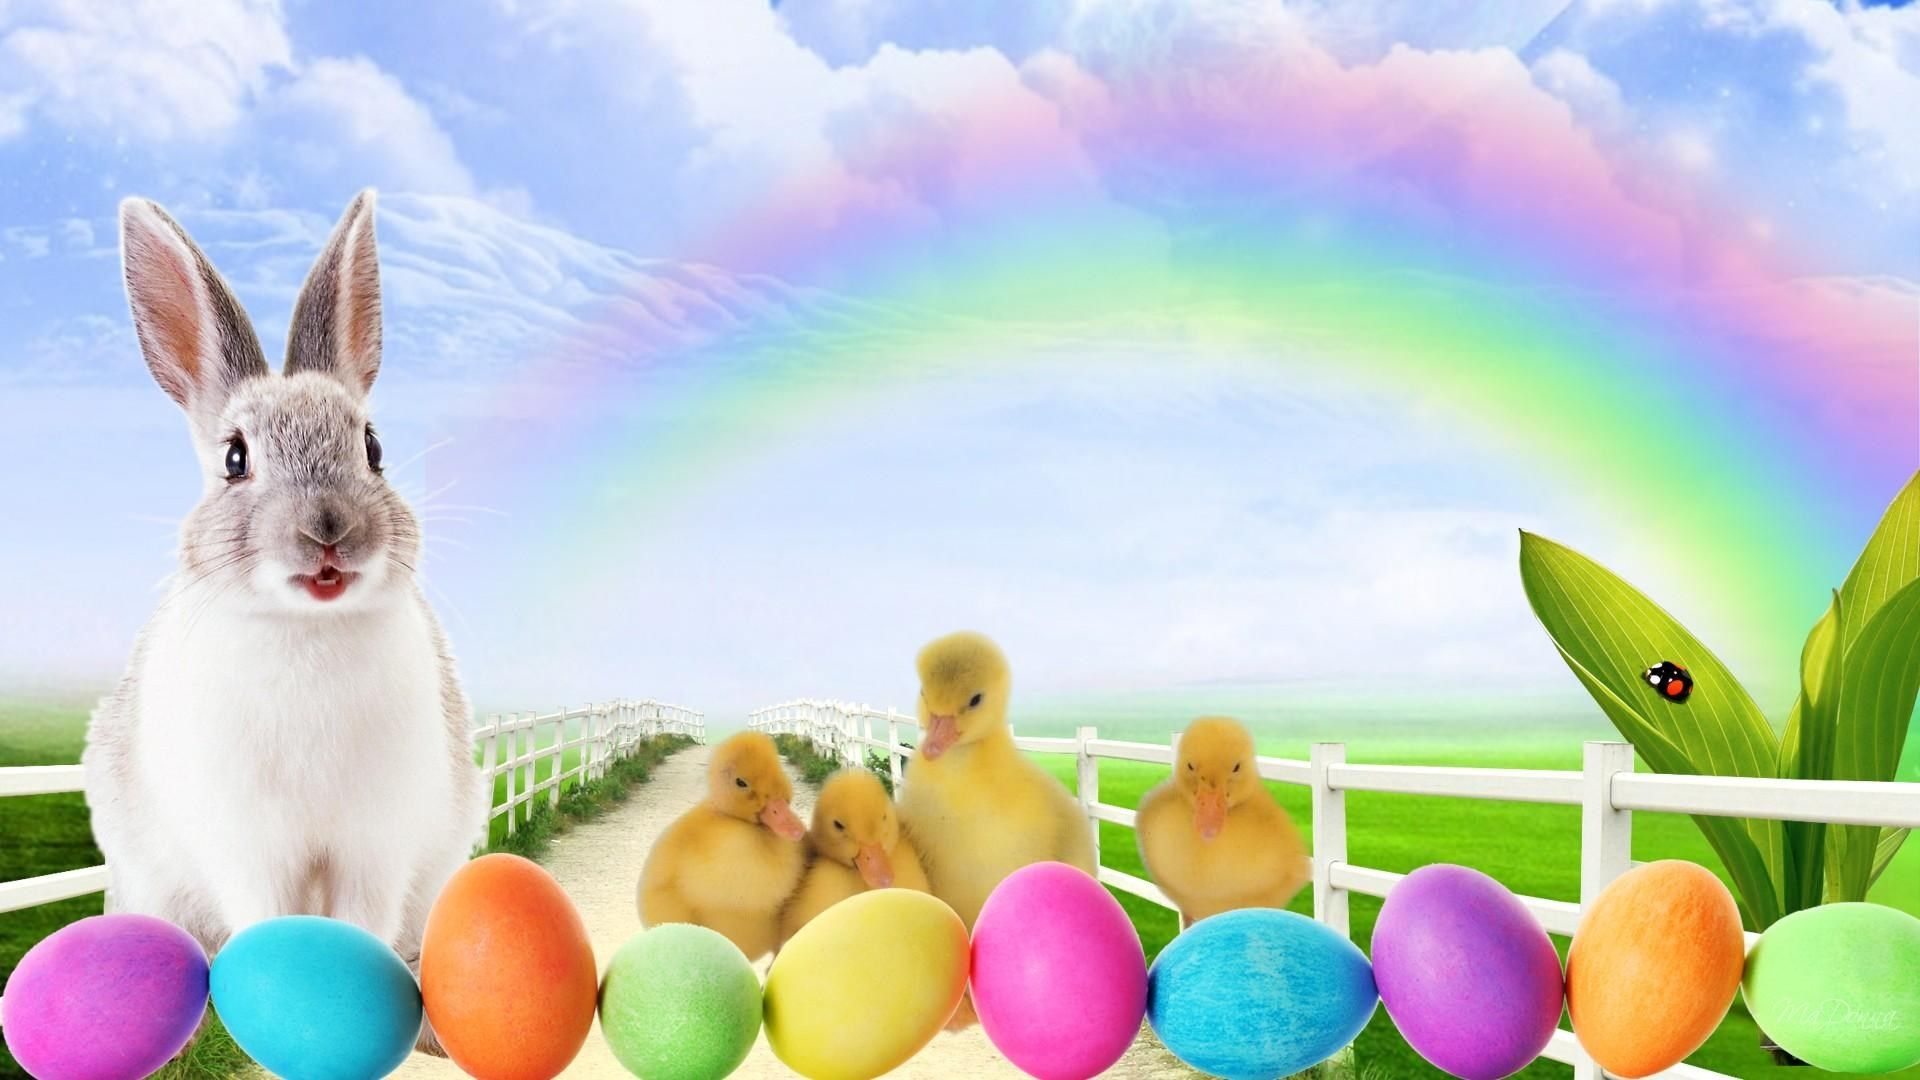 Easter Bunny Wallpaper Free Which Is Under The Wallpapers